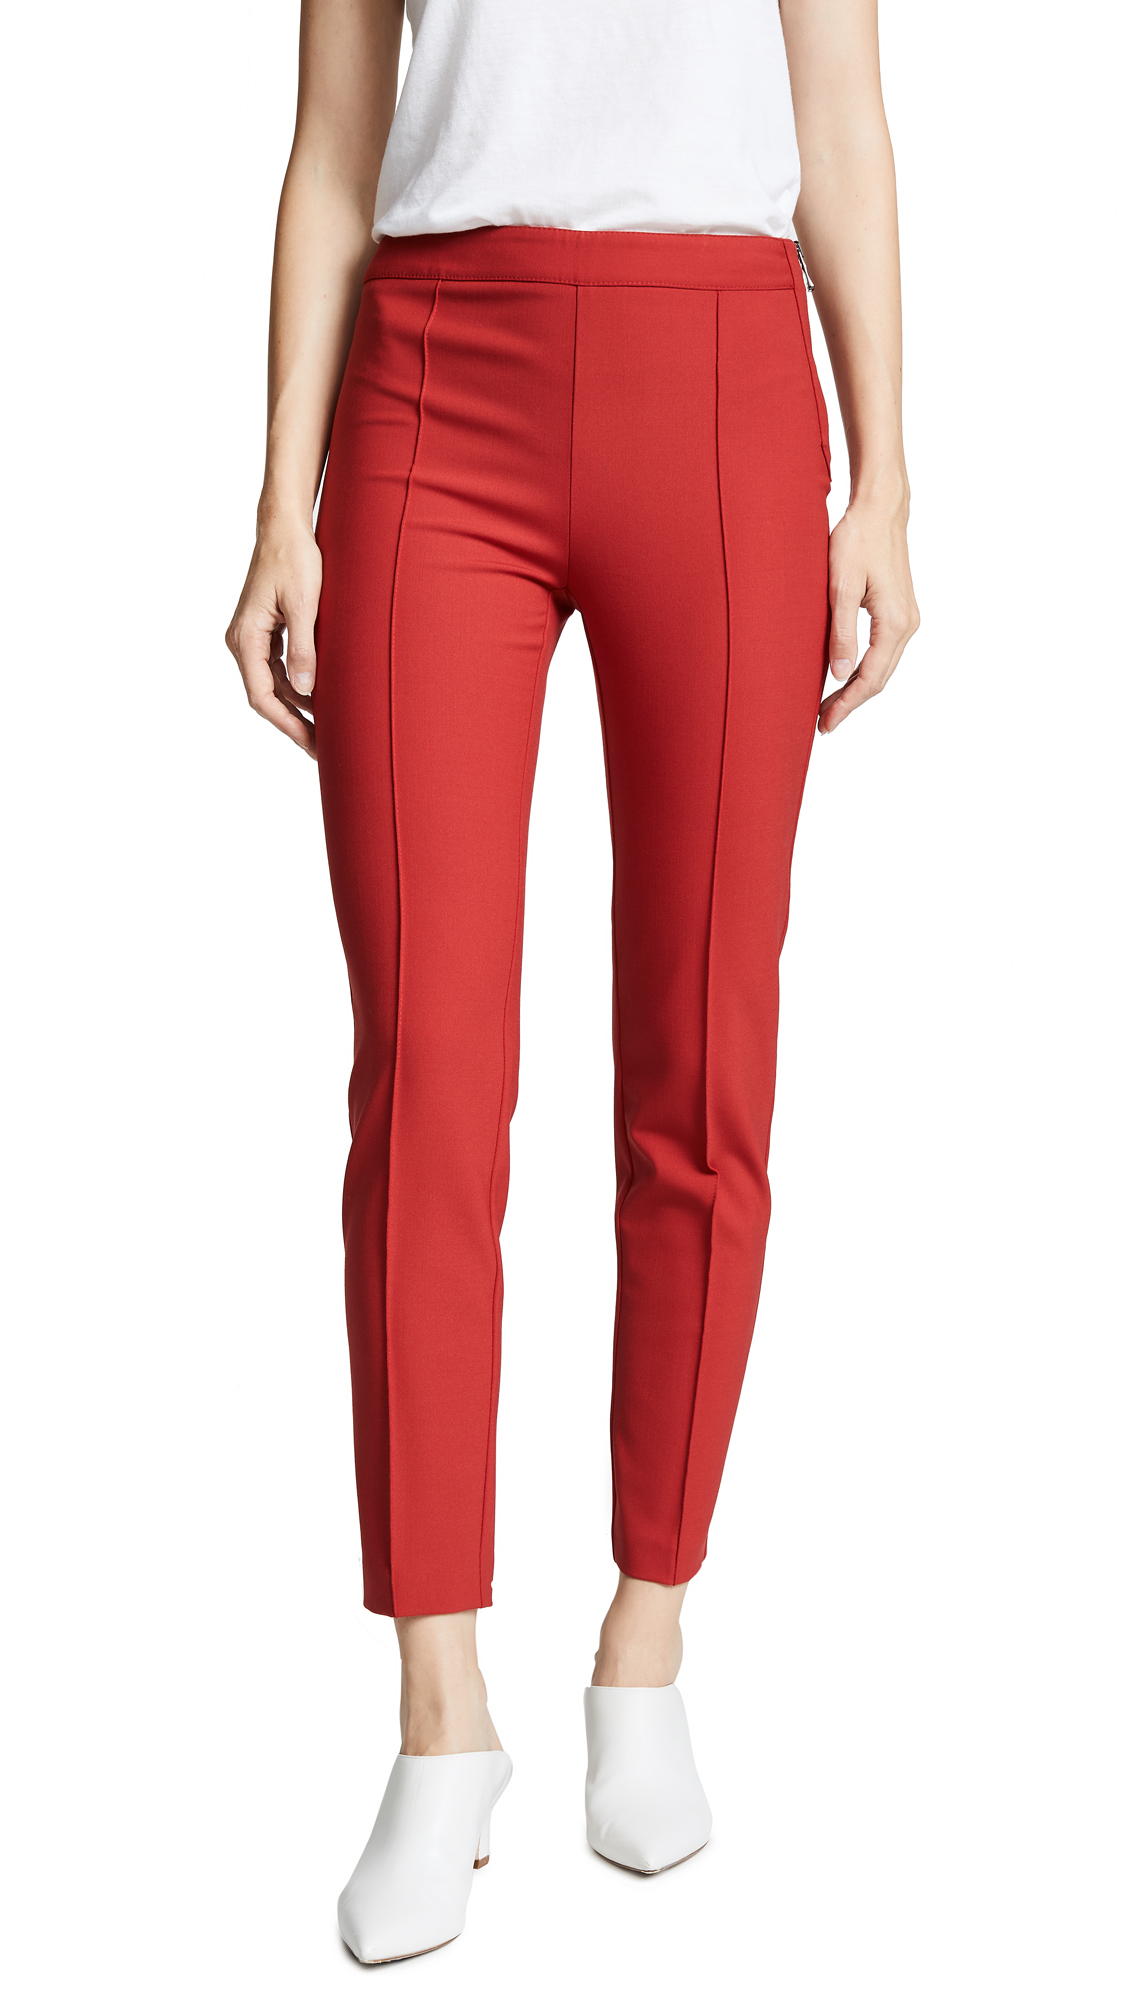 Boutique Moschino Straight Leg Pants - Red